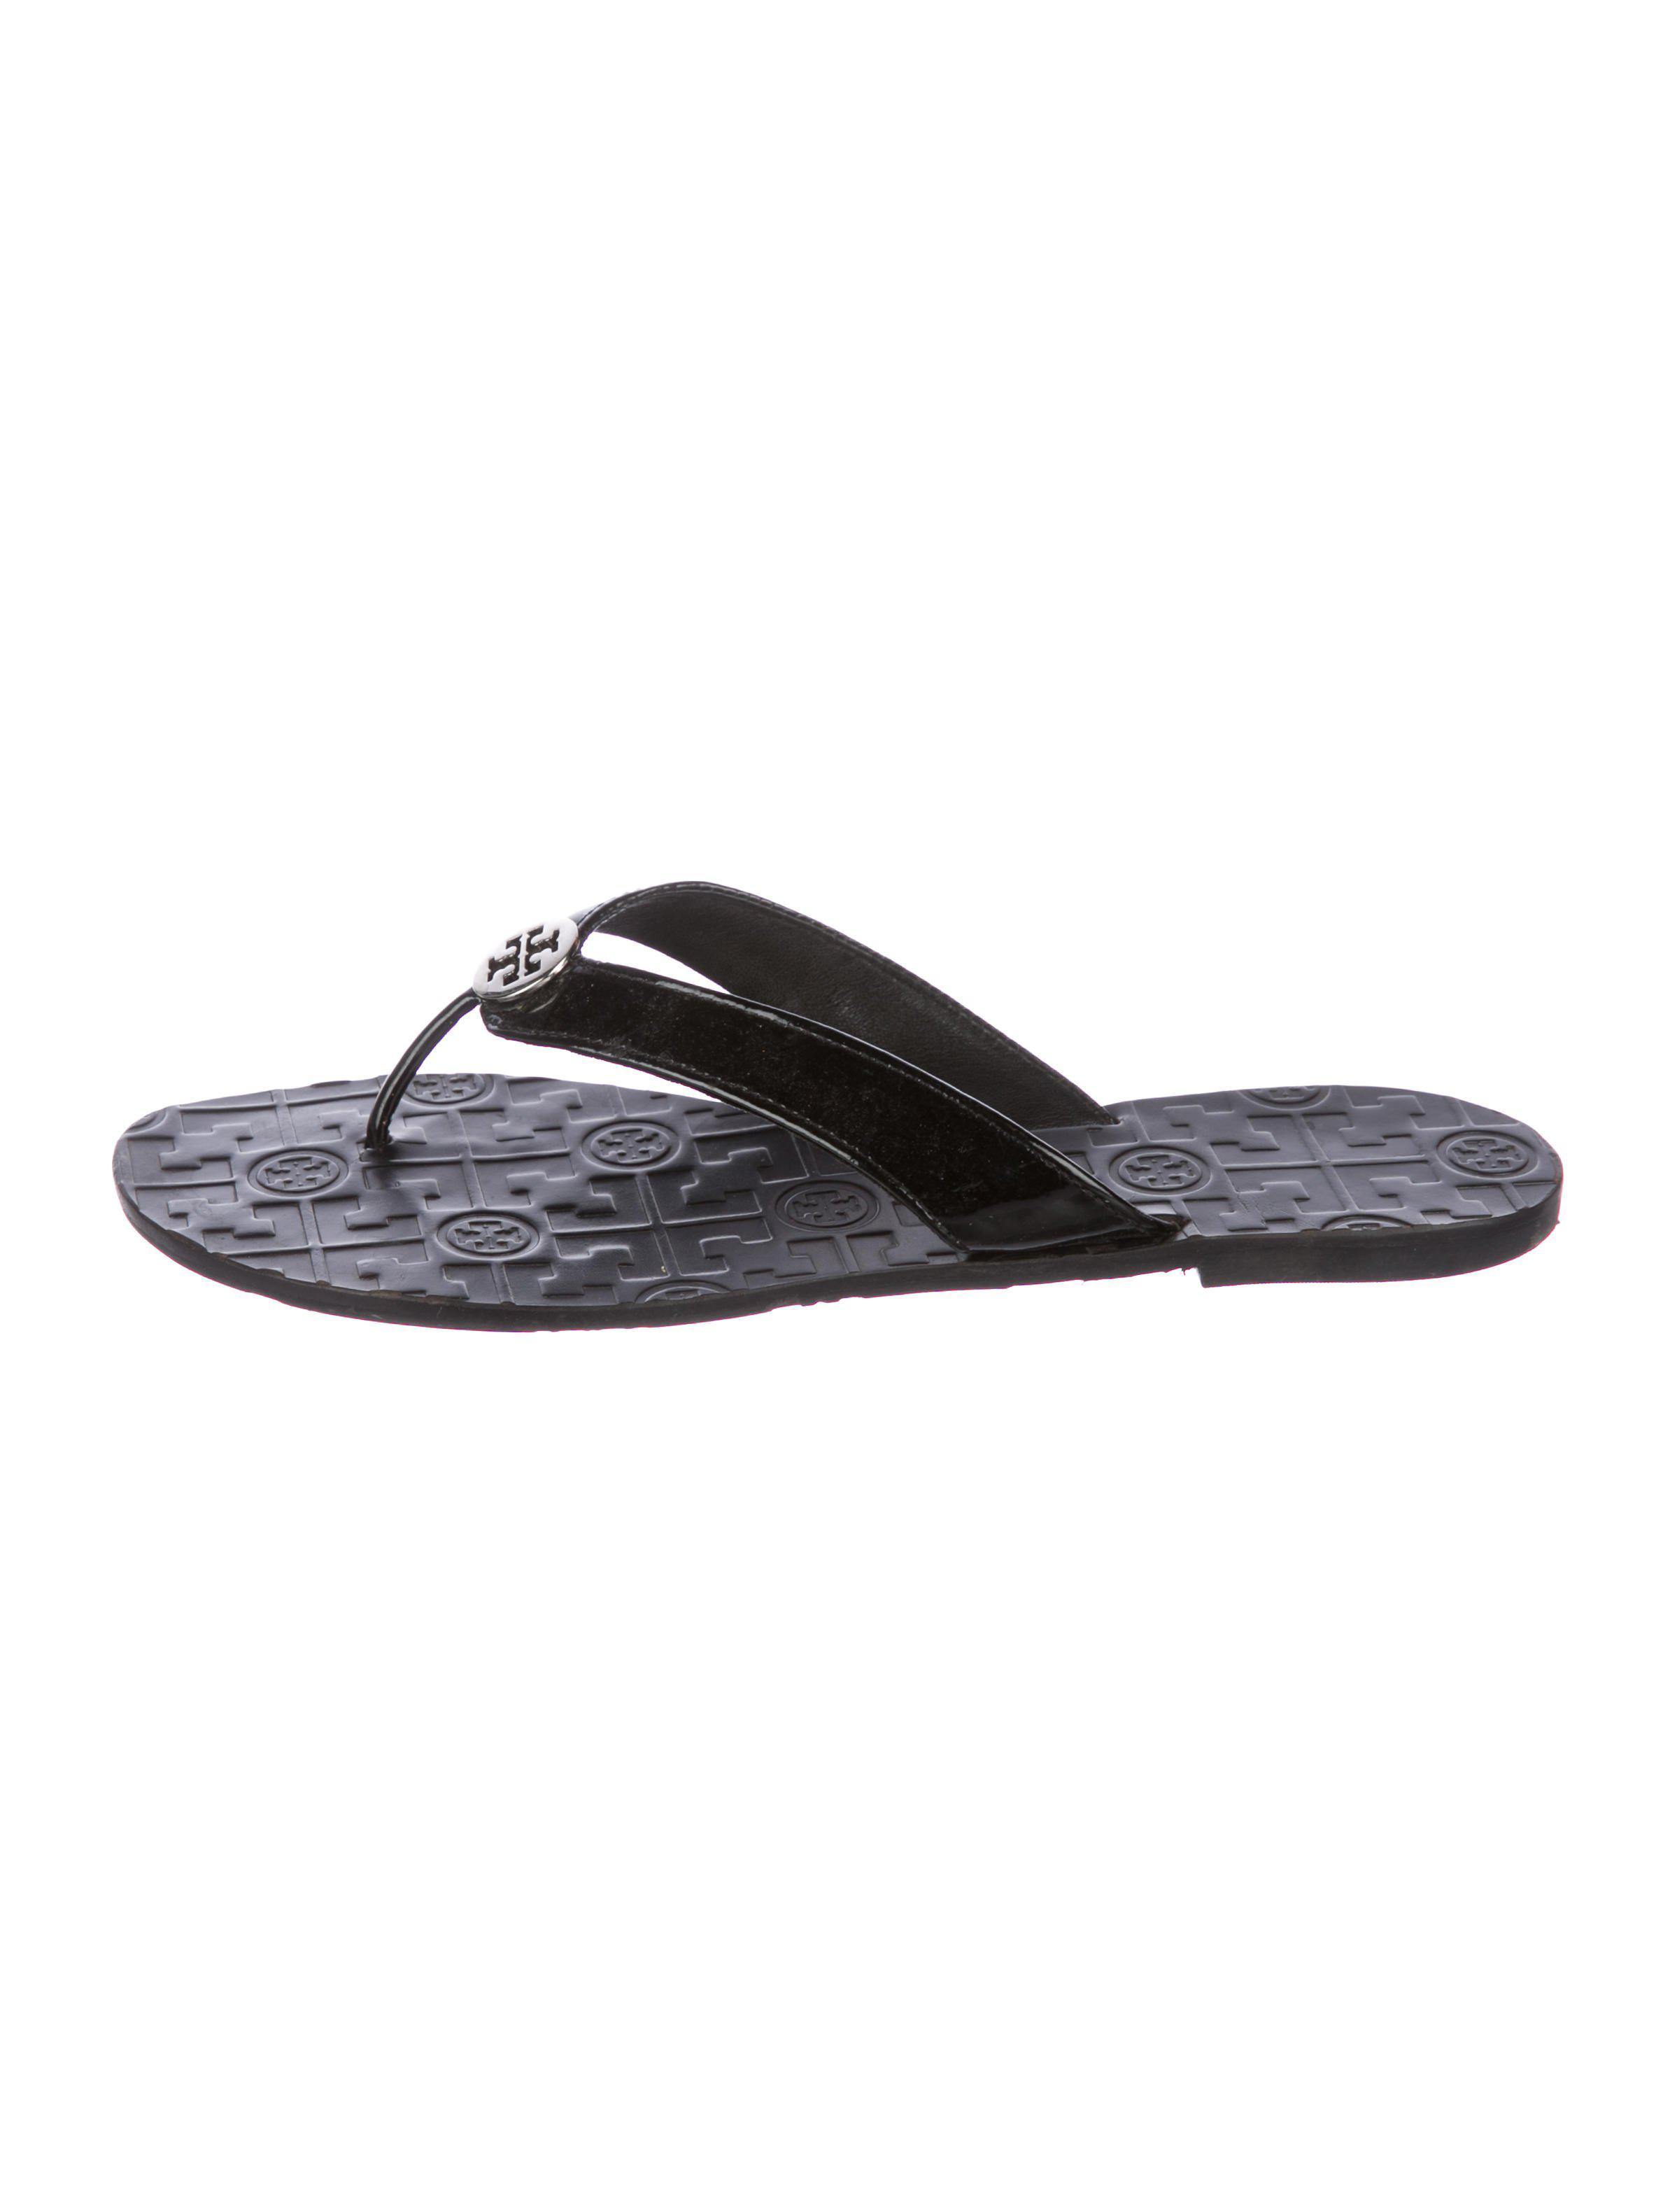 35744d702a72 Lyst - Tory Burch Patent Thong Sandals Black in Metallic